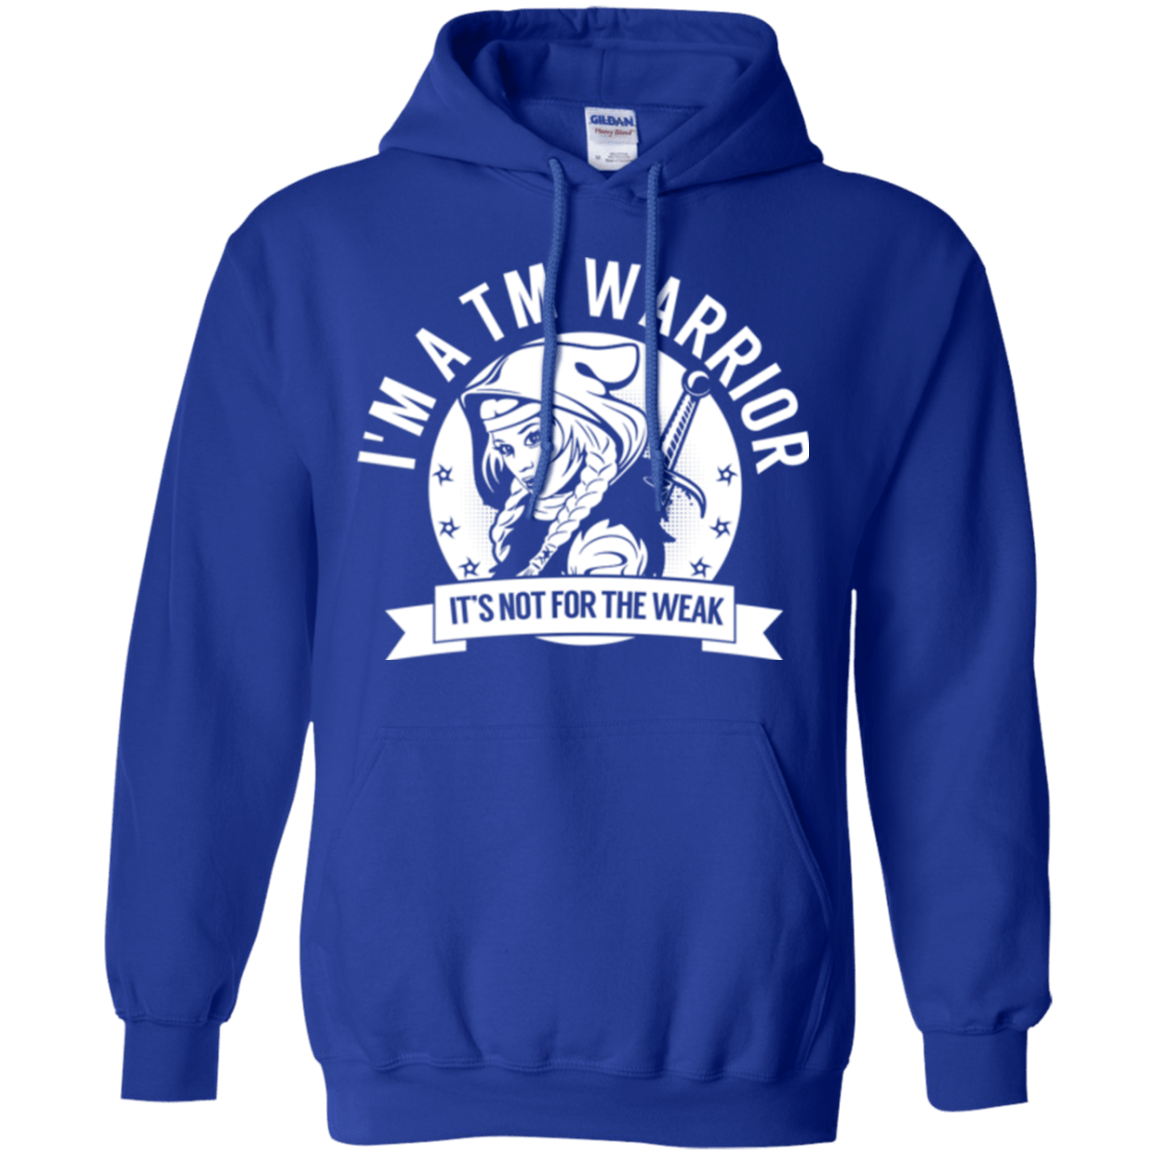 Sweatshirts - Transverse Myelitis - TM Warrior Hooded Pullover Hoodie 8 Oz.